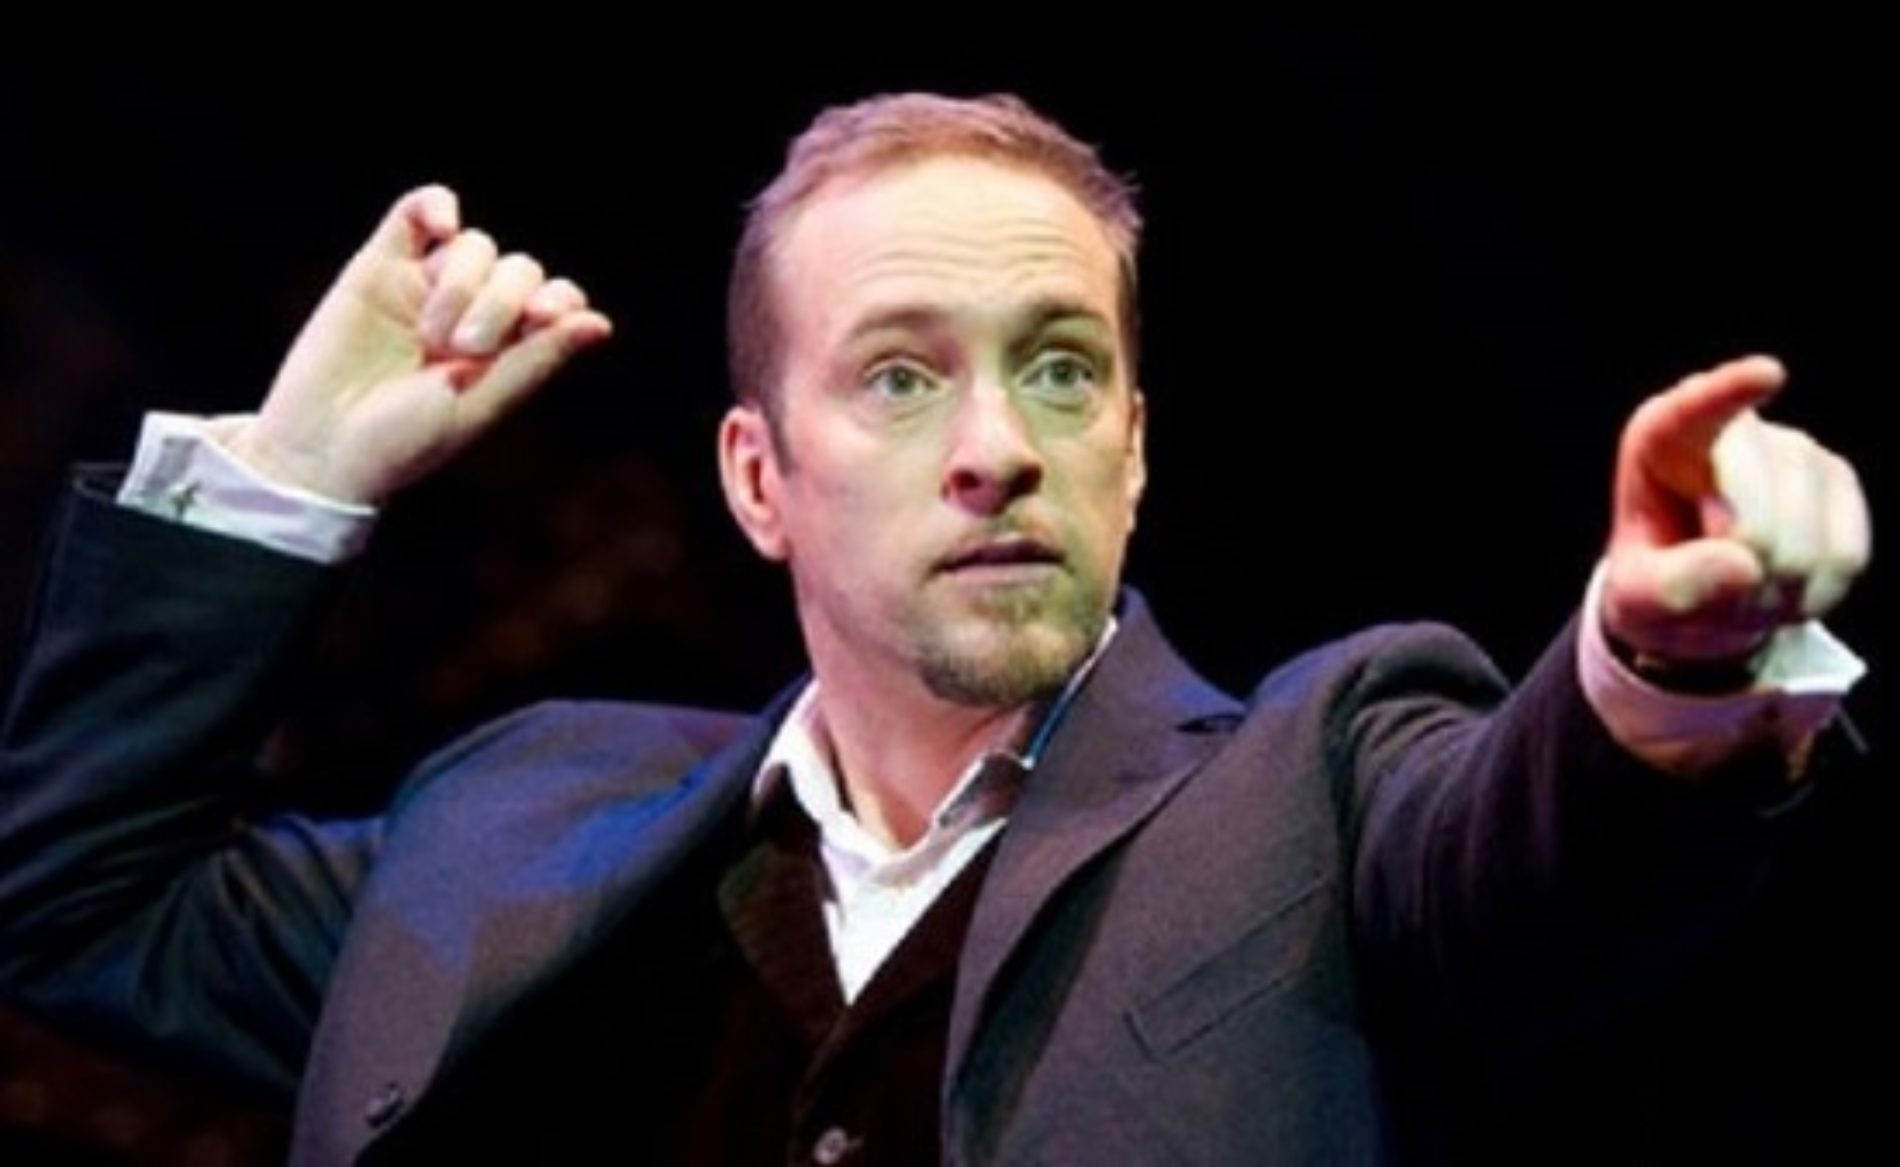 The Perfect Response Gay Magician Derren Brown Gave to shut down a Homophobic Troll